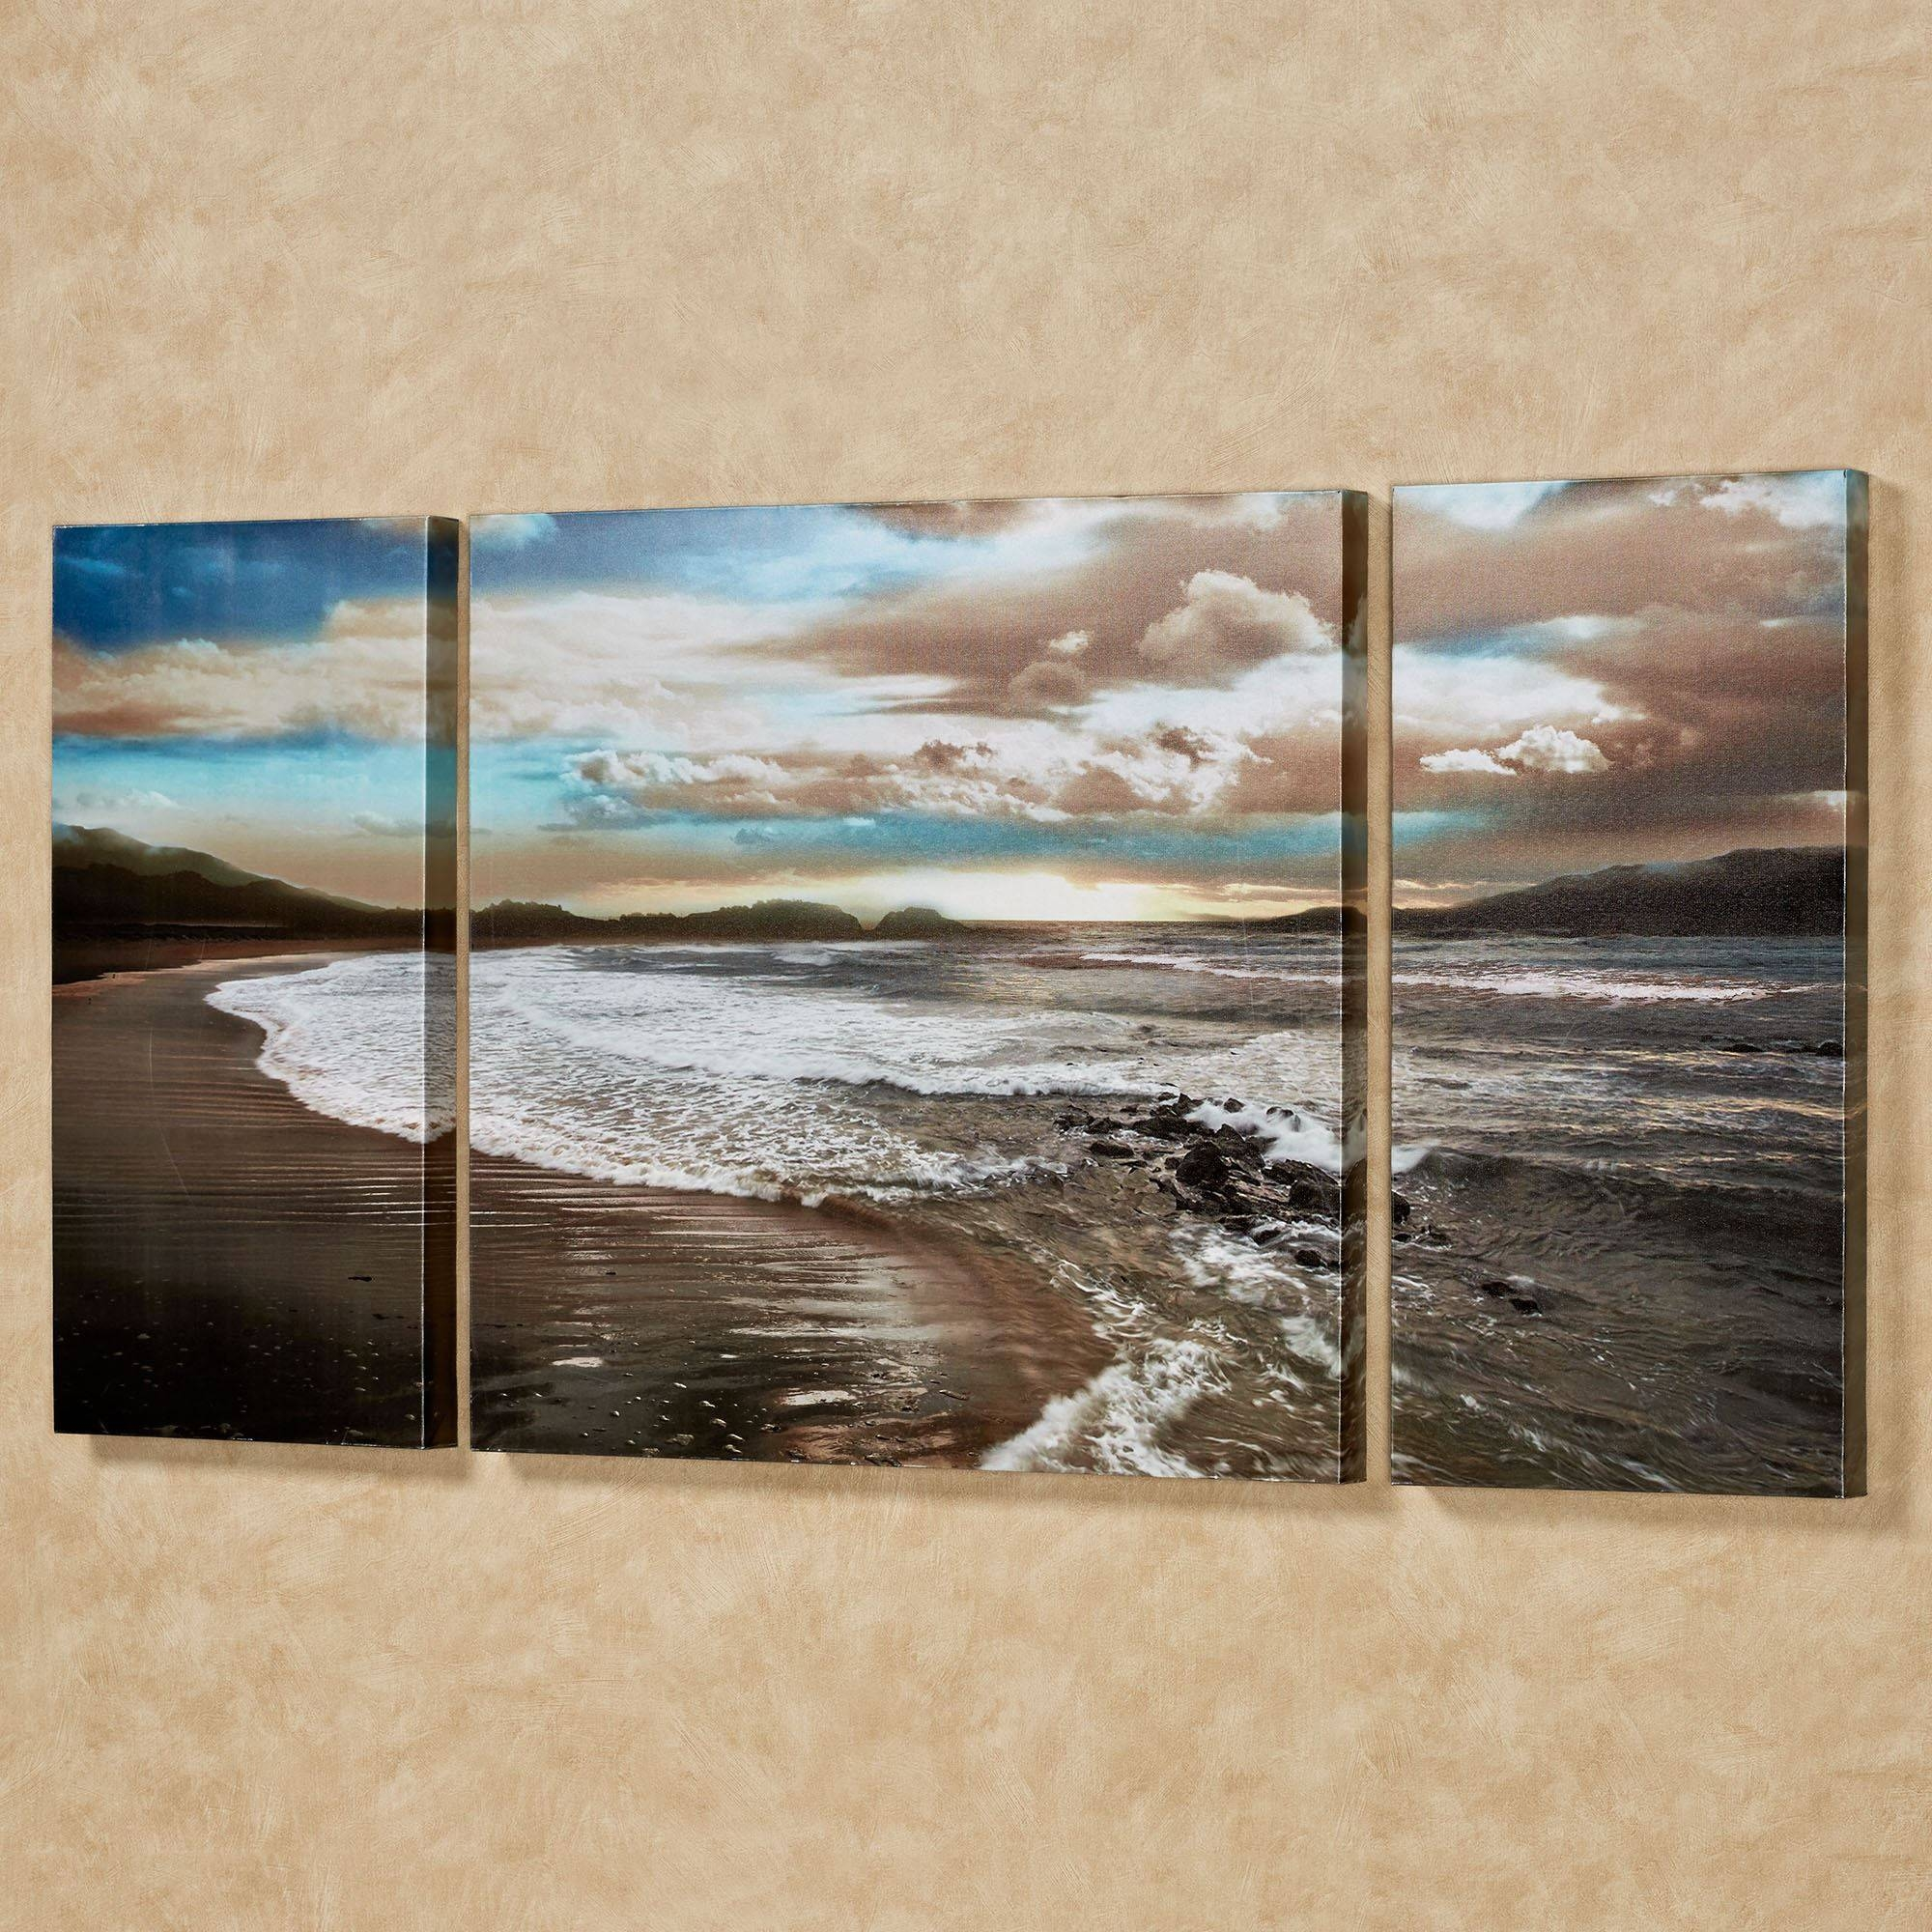 Coastal And Tropical Canvas Wall Art | Touch Of Class Inside 2017 Coastal Wall Art Canvas (View 15 of 20)